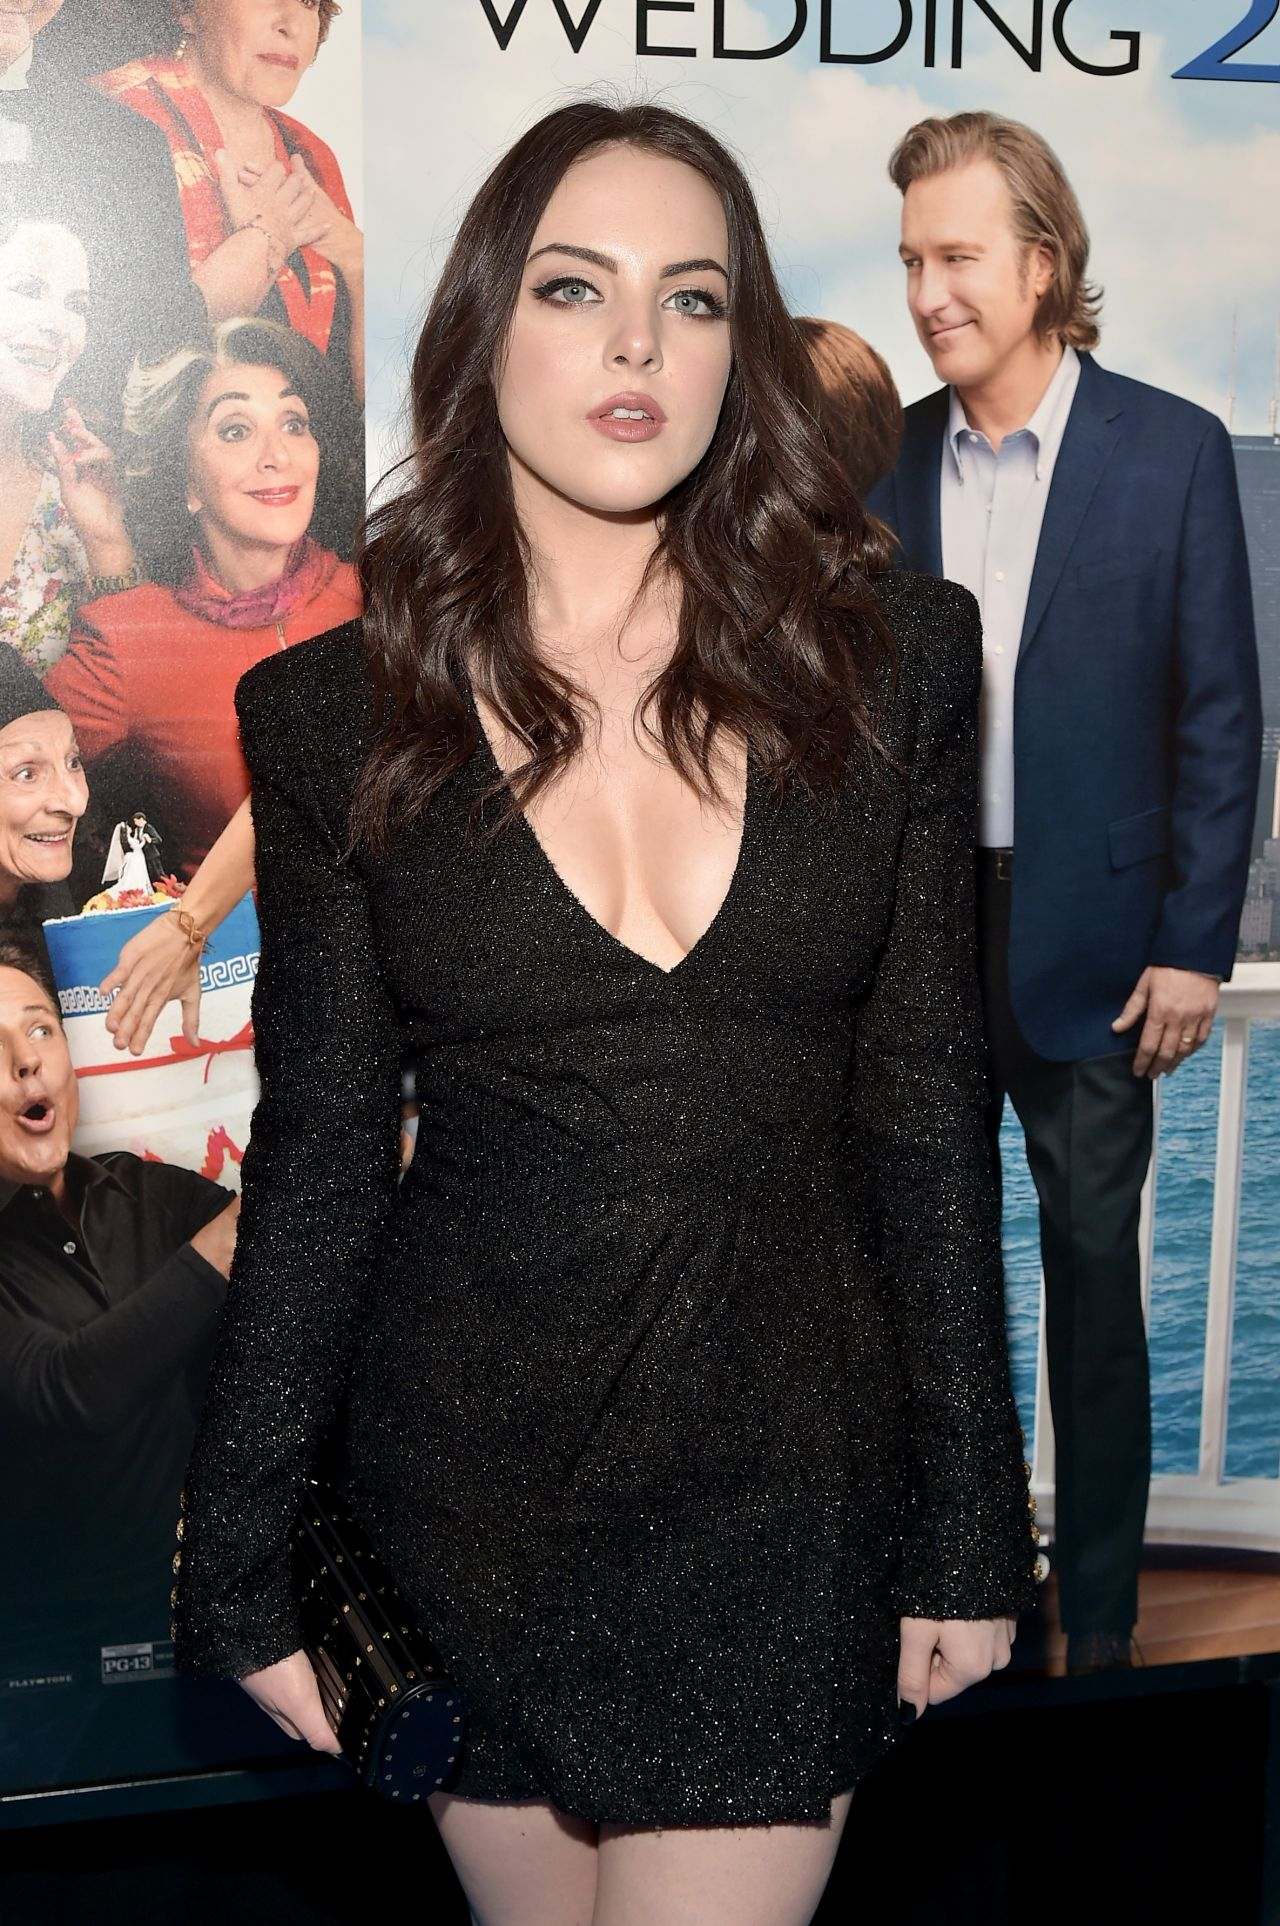 My Big Fat Greek Wedding 2.Elizabeth Gillies My Big Fat Greek Wedding 2 Premiere In